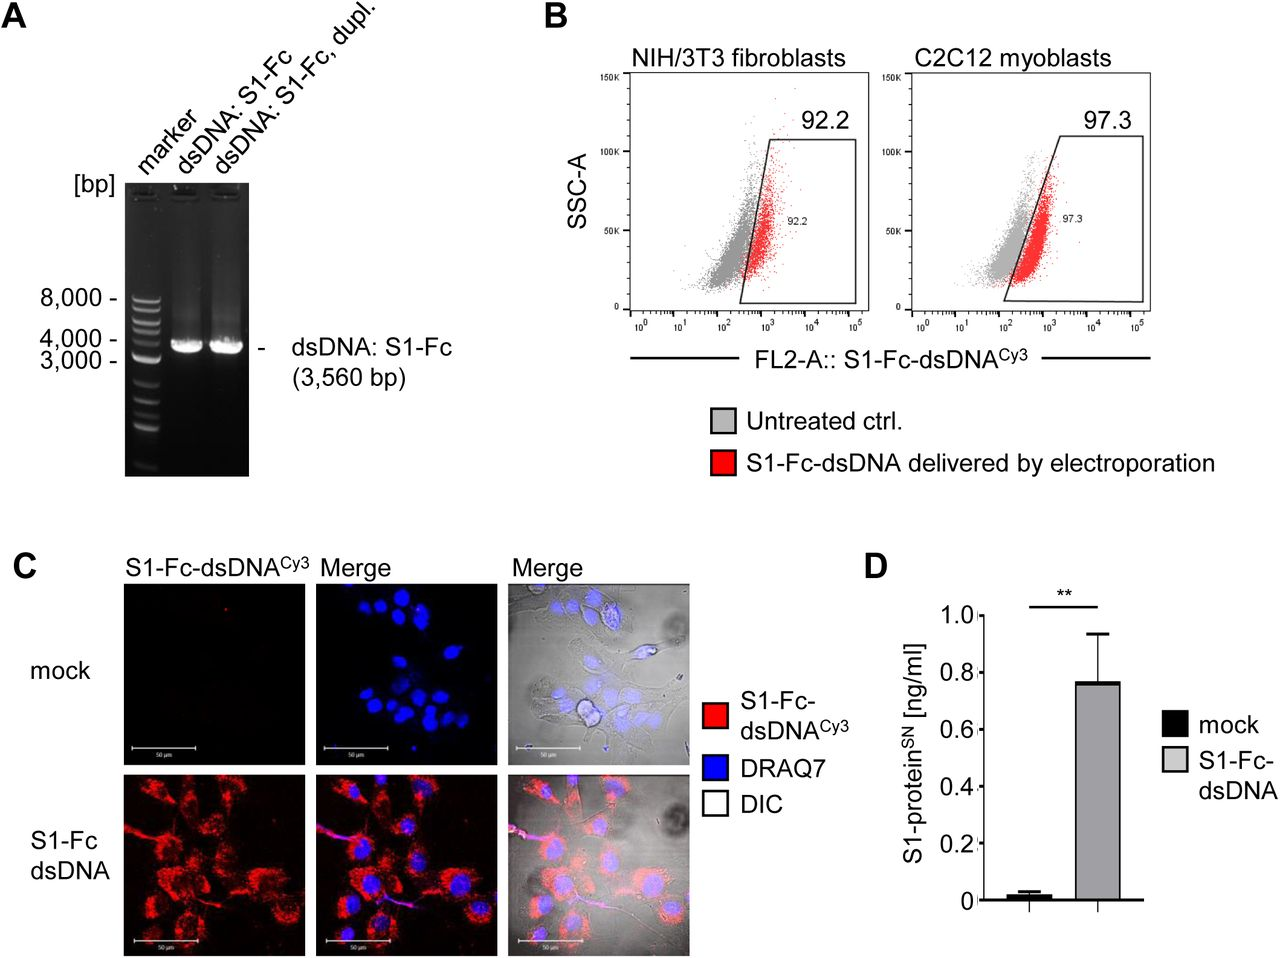 Production and secretion of S1-Fc-protein antigen by muscle cells. ( A ) Linear dsDNA encoding S1-Fc was generated by PCR-based amplification and subjected to analytical DNA gel electrophoresis, assessing accurate size and excluding undesired intermediate product. ( B ) Cellular internalization of fluorescently labeled dsDNA encoding S1-Fc was assessed by flow cytometry immediately after electroporation procedure, gating on dsDNA encoding S1-Fc + cells (red). ( C ) Cellular internalization of S1-Fc-dsDNA was validated by confocal microscopy. Scale, 50 μm. ( D ) Produced S1-Fc protein secreted by C2C12 muscle cells within 96 h after electroporation was assessed from collected cell supernatant and analyzed by MSD assay. SD shown. T-test: **) P